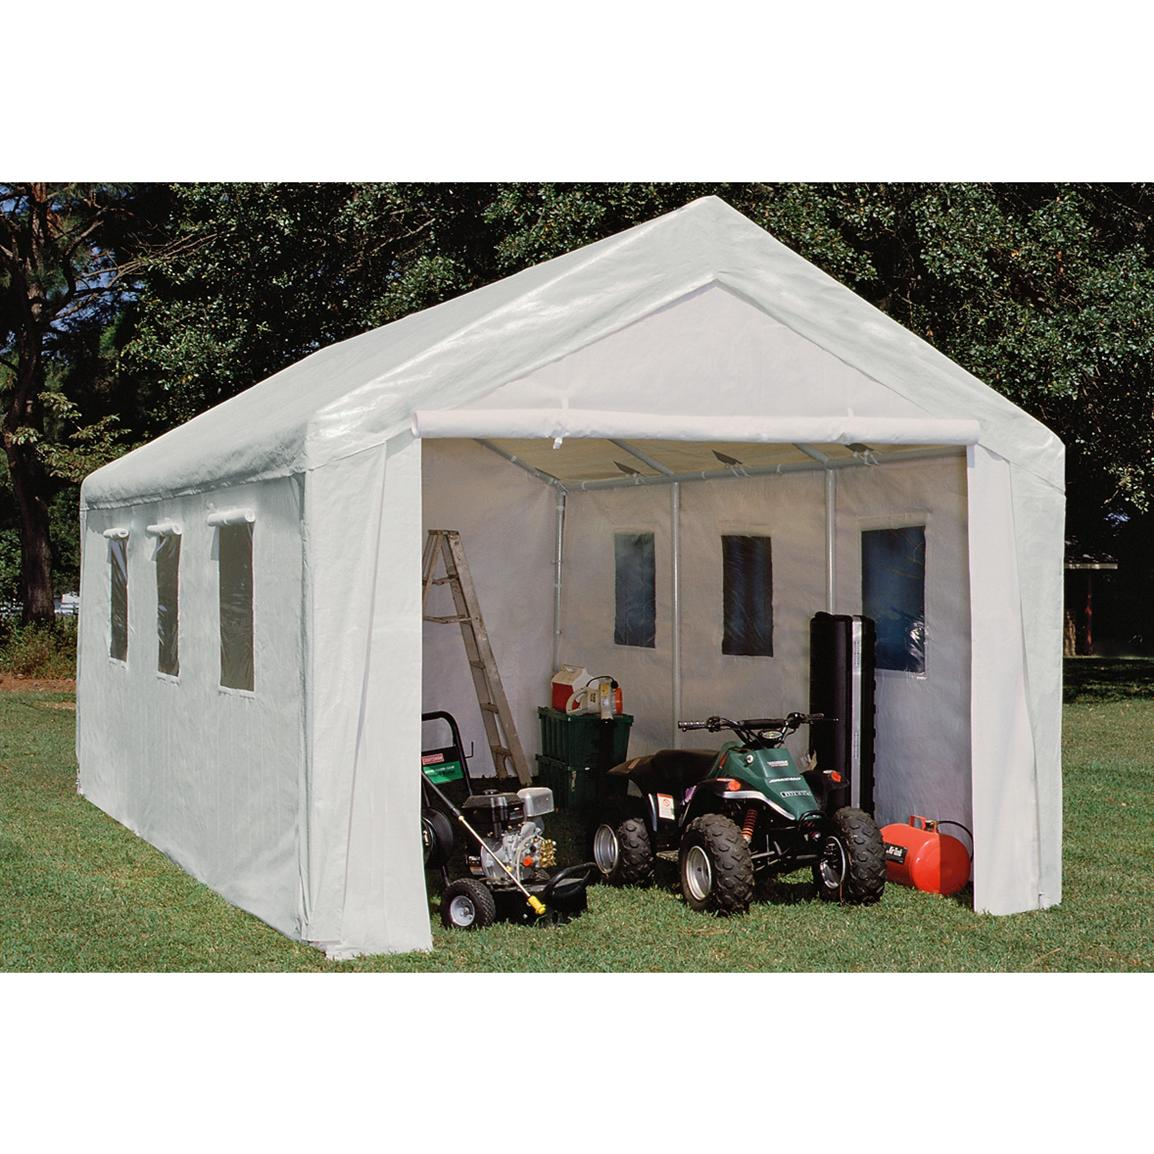 10x20 Hercules Snow Load Canopy Shelter  Garage White